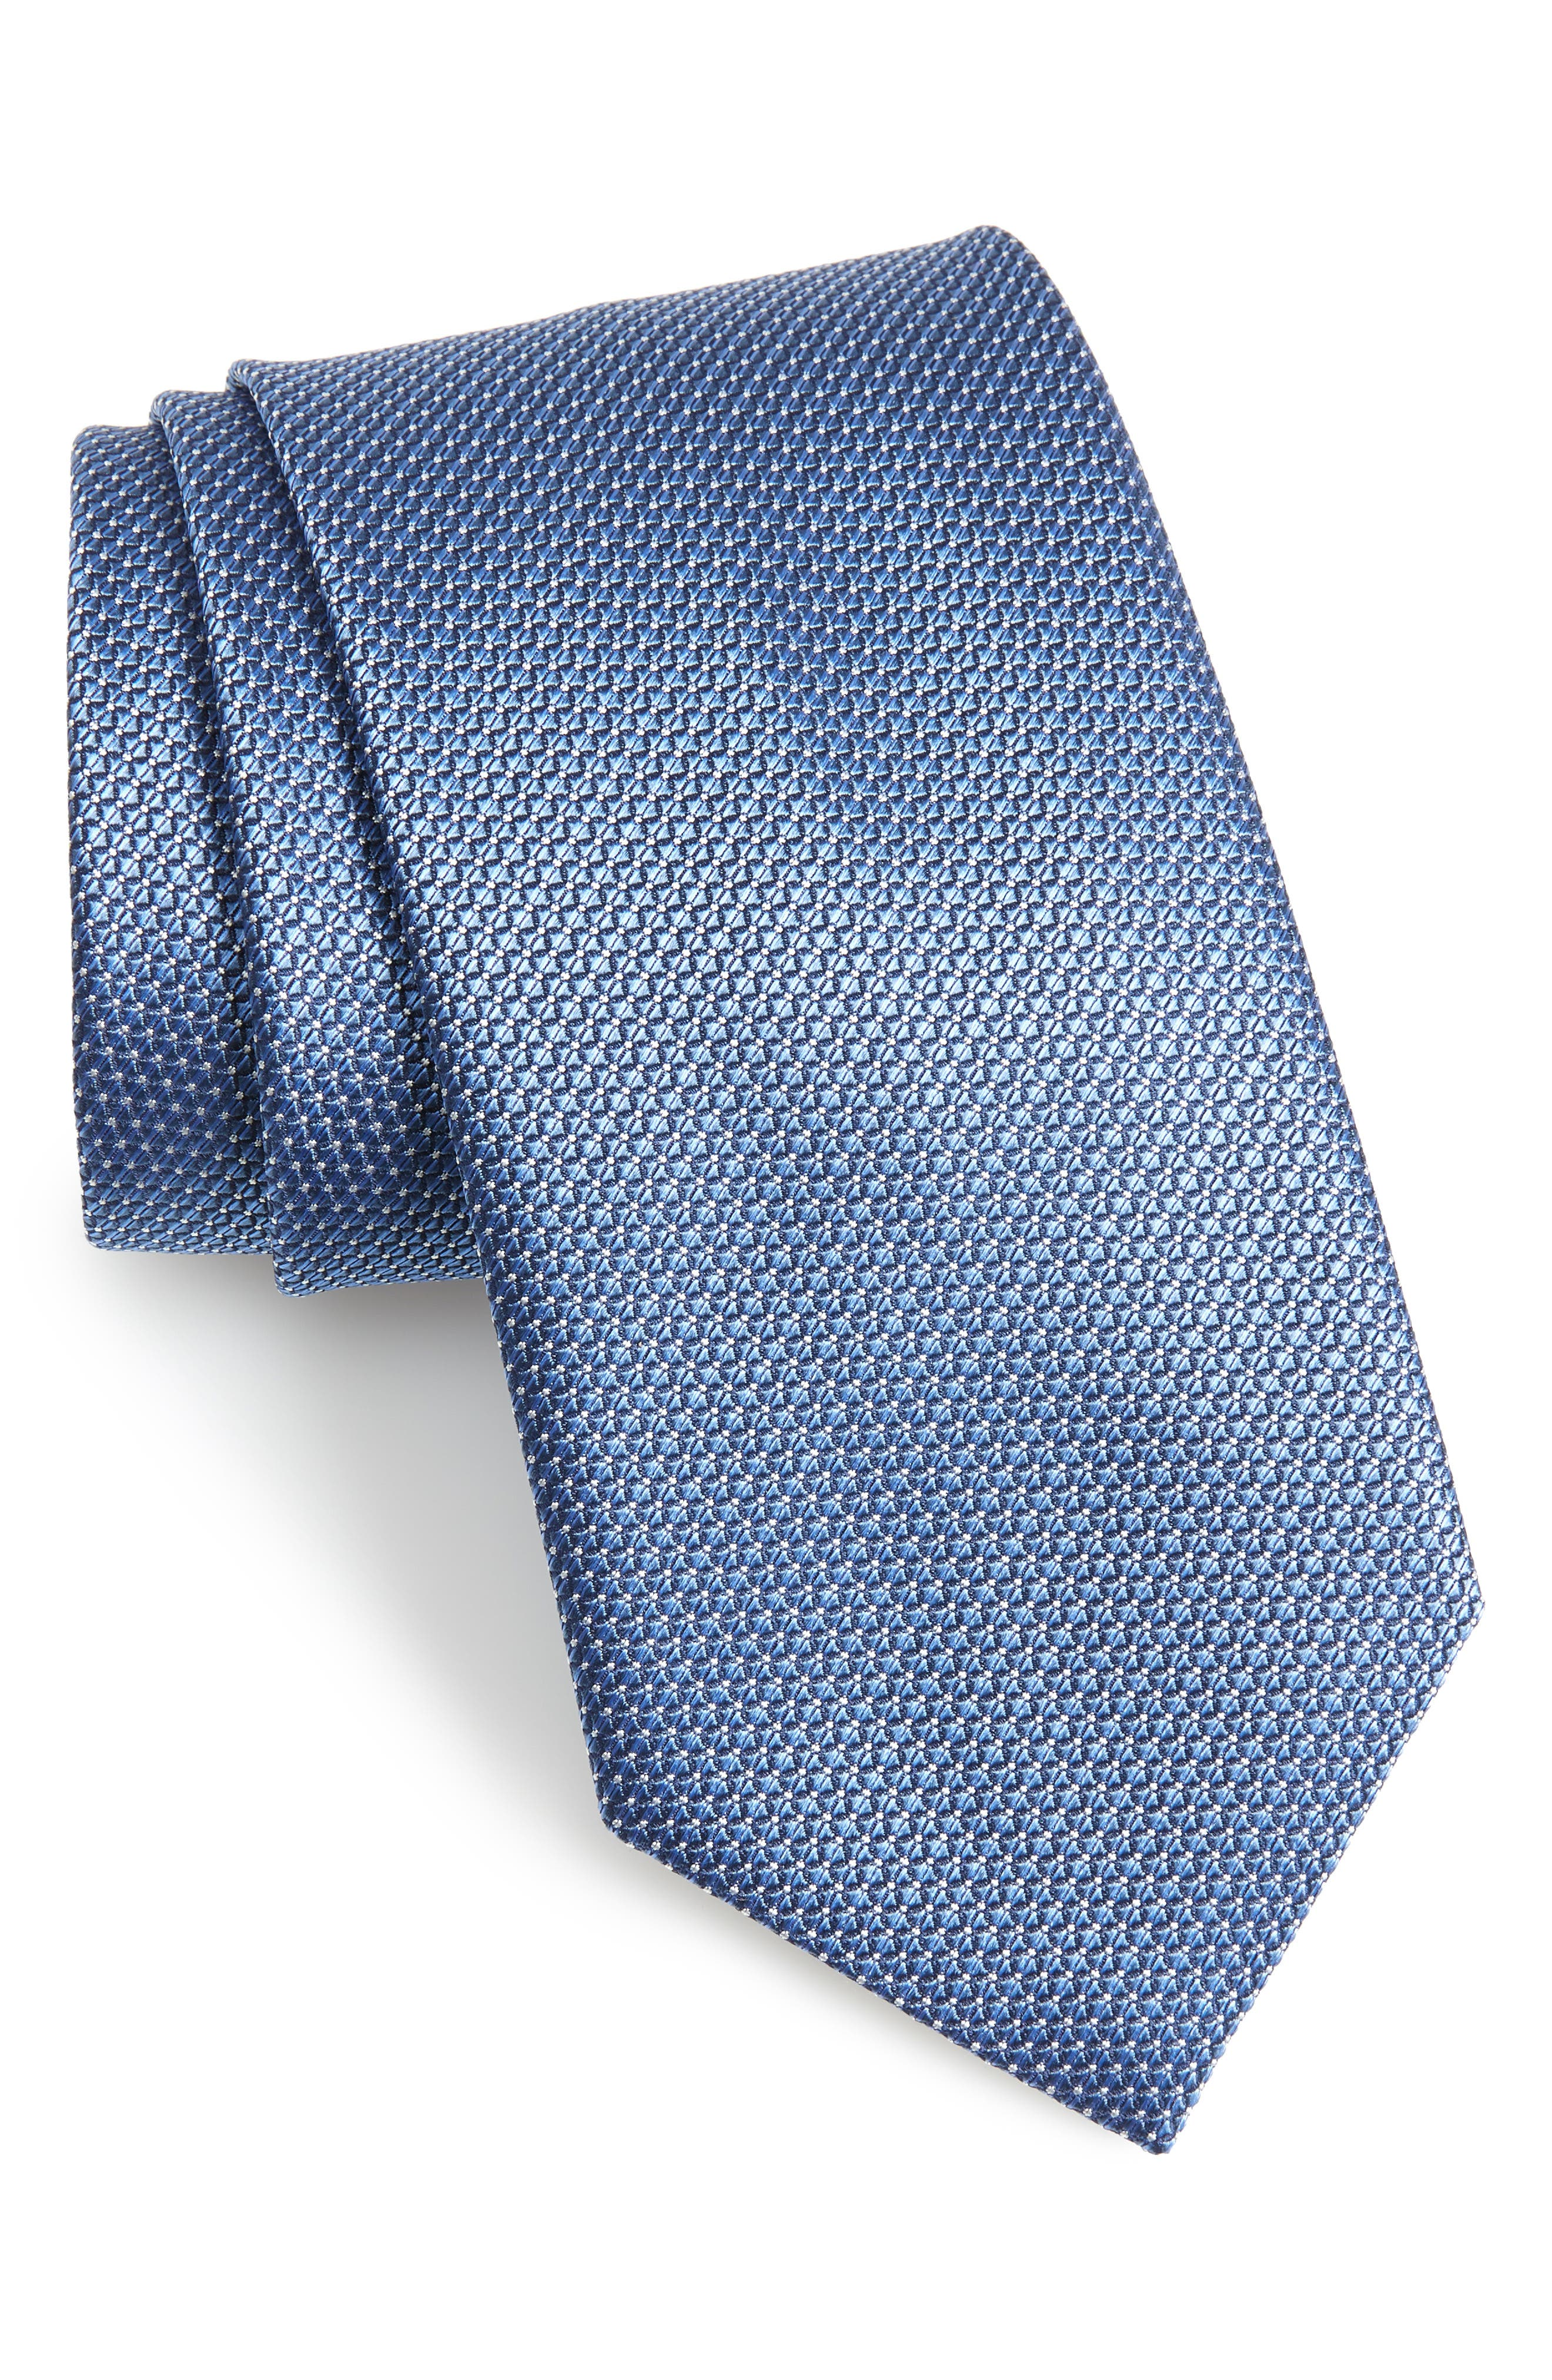 Geometric Silk Tie,                         Main,                         color, 490